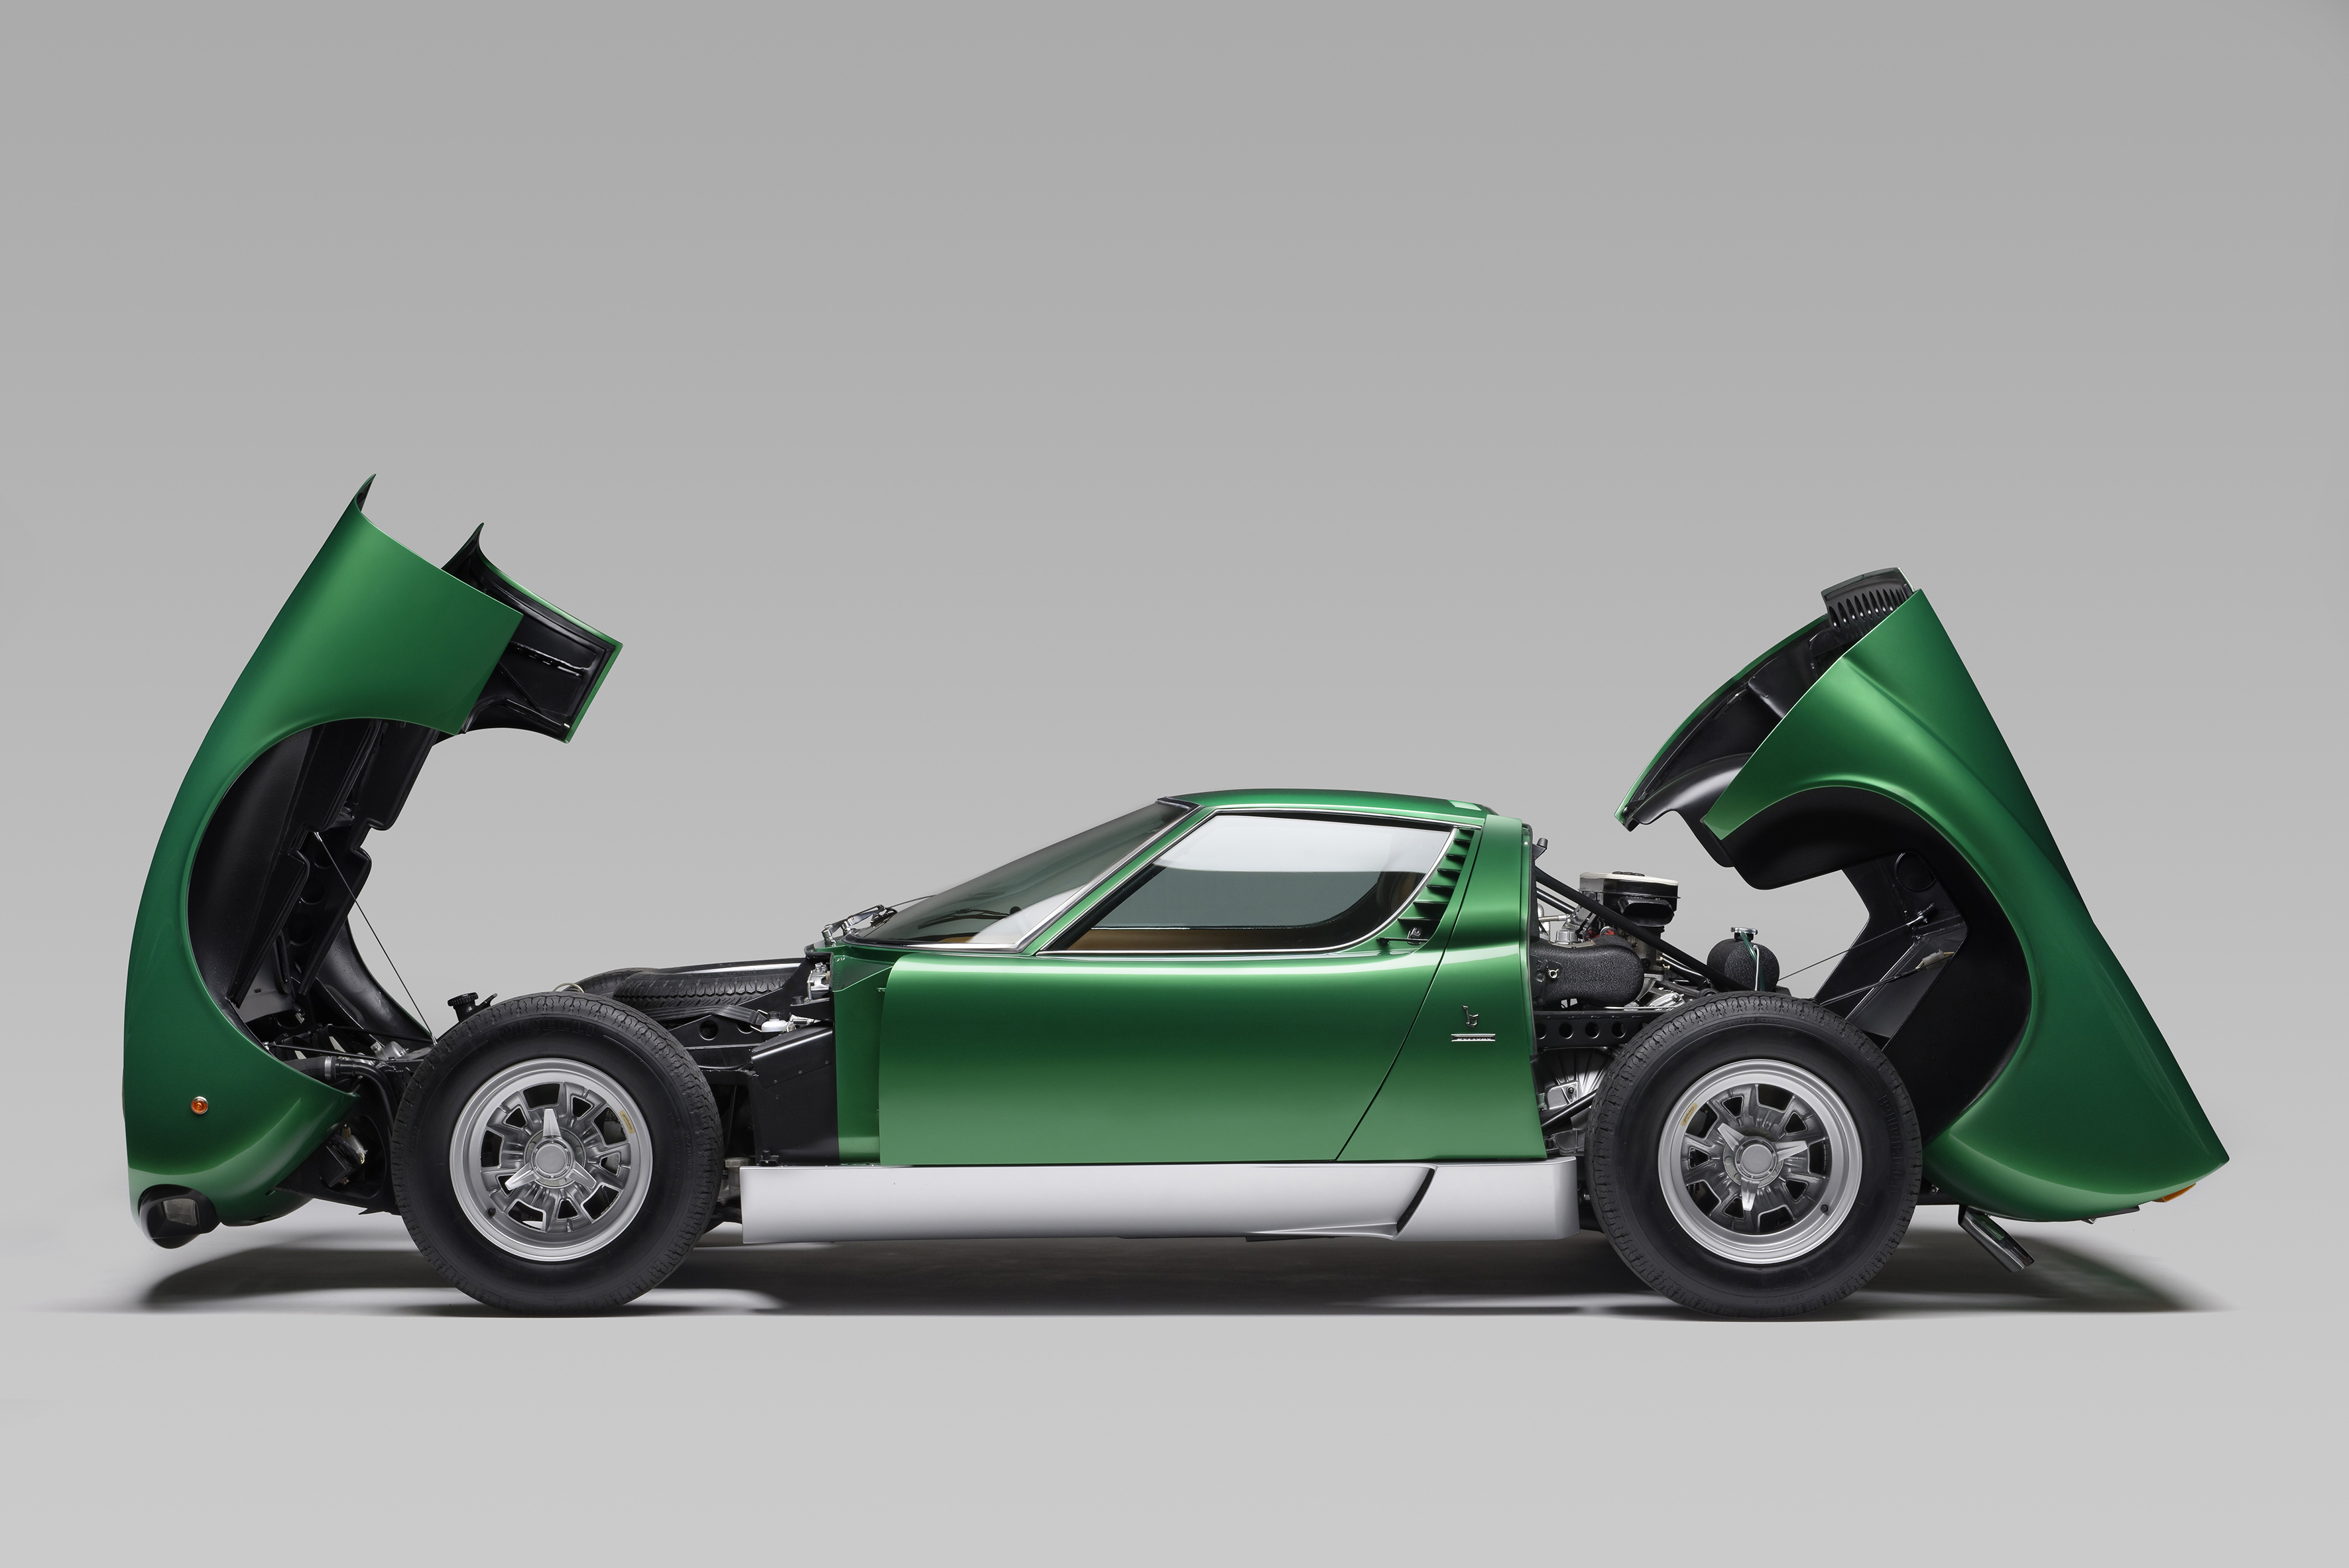 Lamborghini Completely Restored The First Miura Sv For The Car S